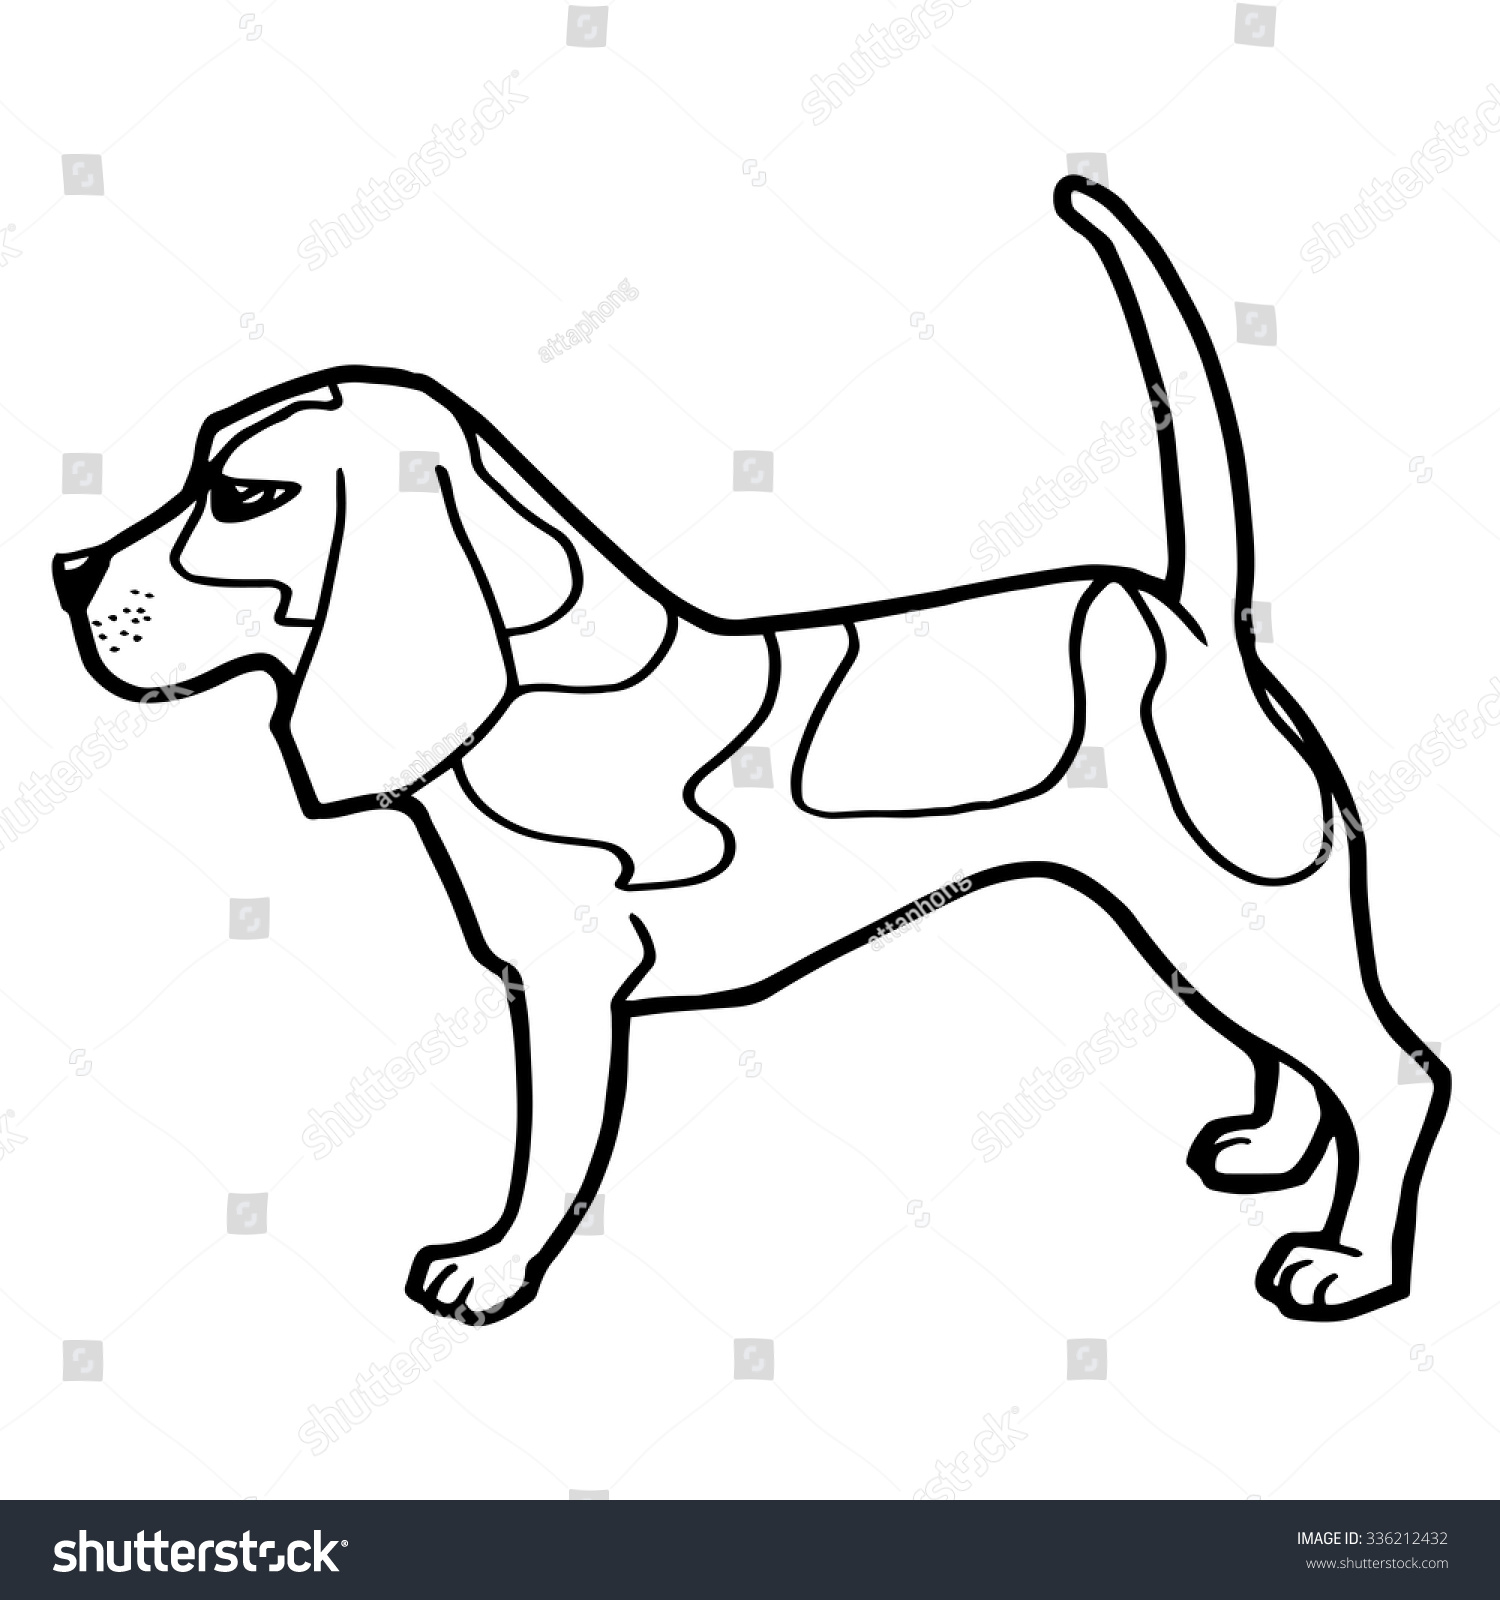 dog coloring book vector stock vector 336212432 shutterstock